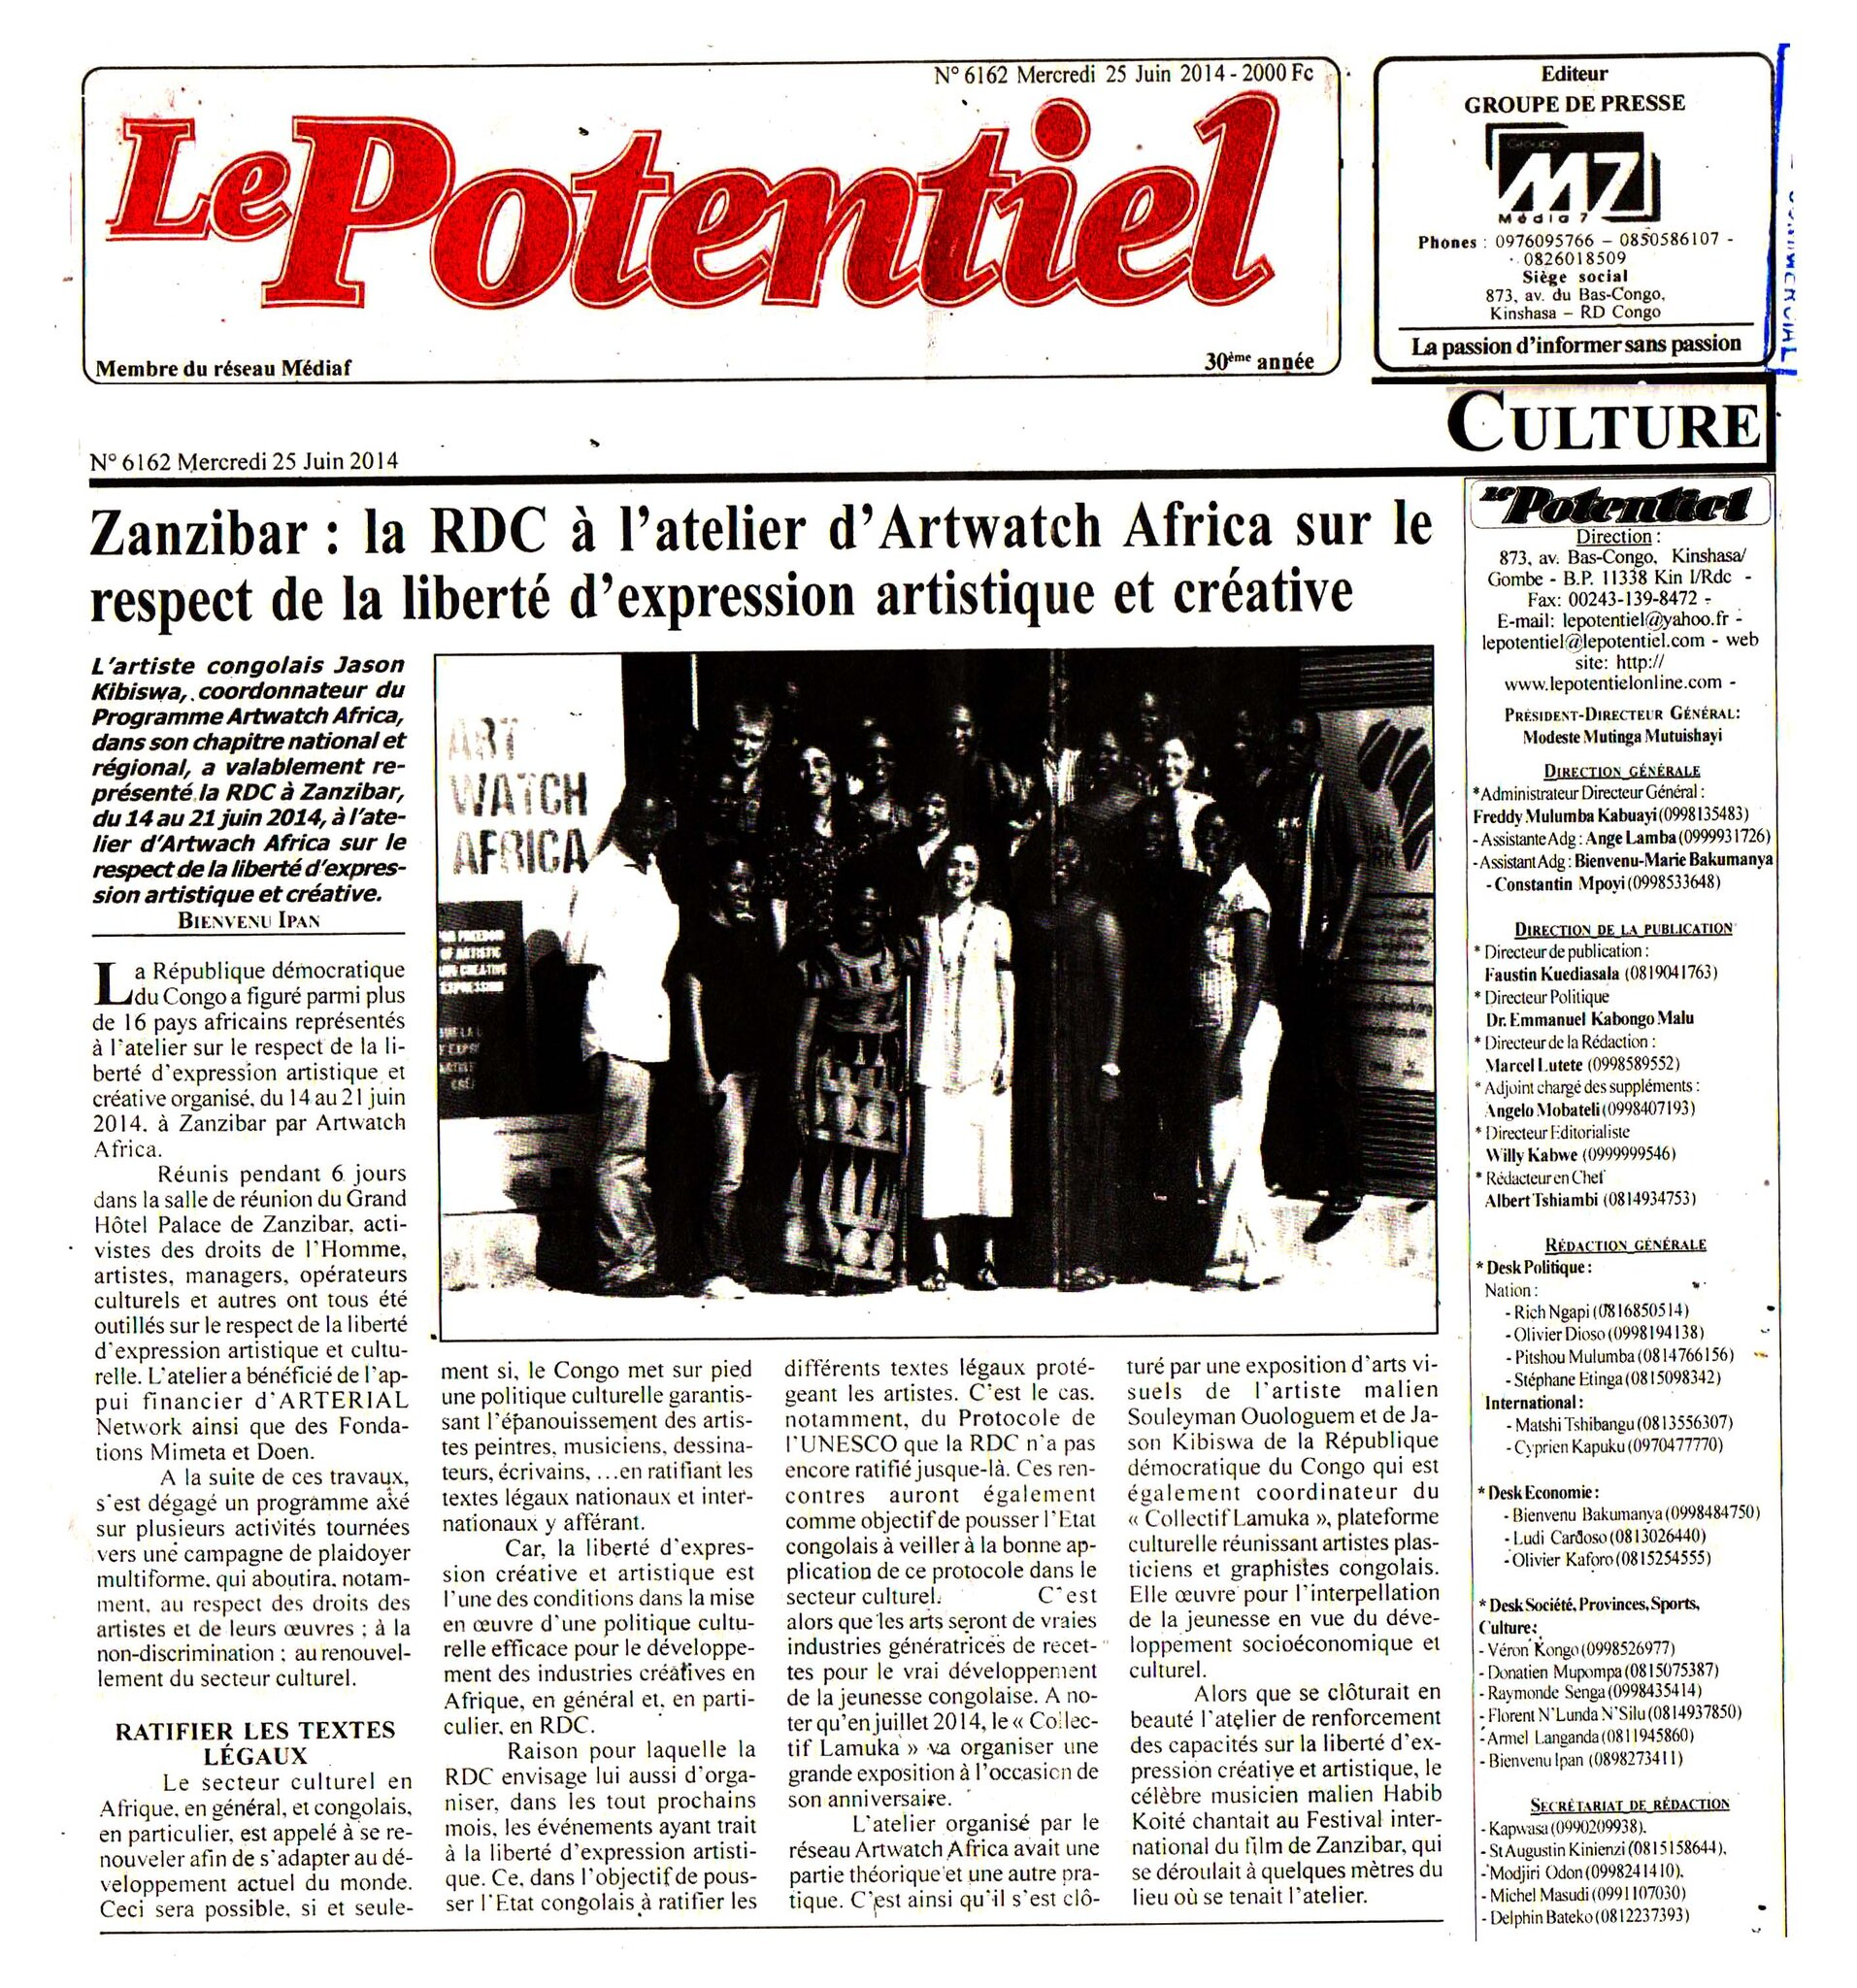 Un article dans le Journal Le Potentiel